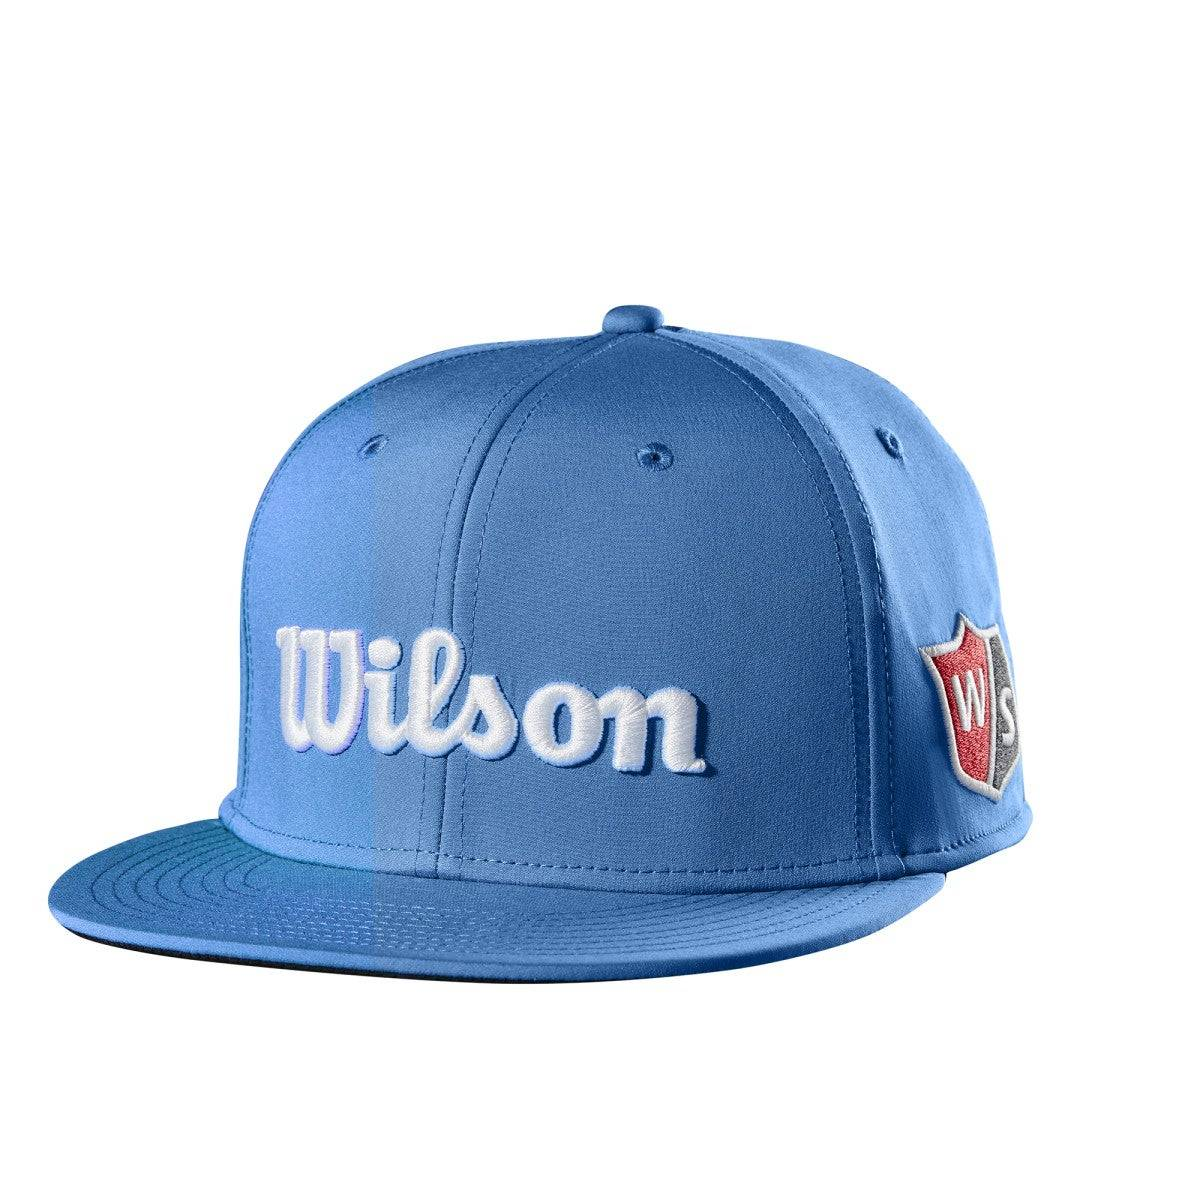 Wilson Flat Brim Hat in Blue - Size: One Size  - Unisex - Blue - Size: One Size